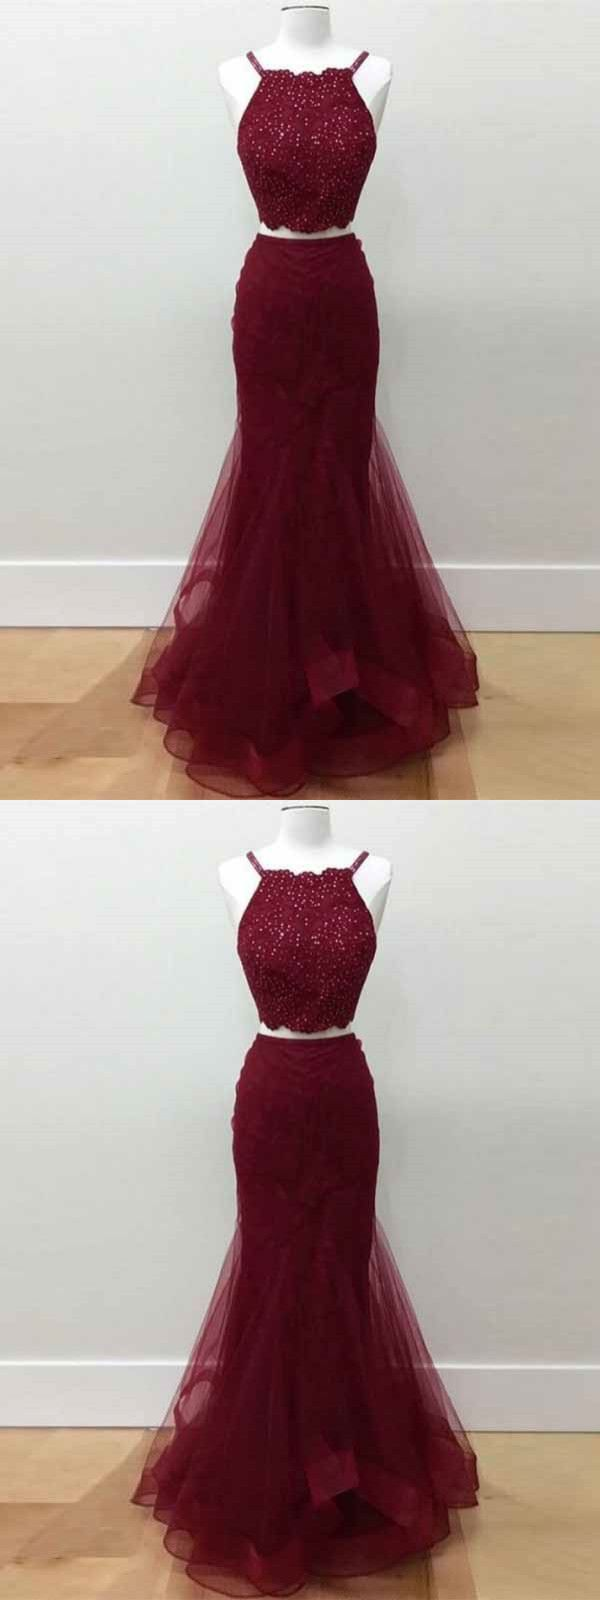 Burgundy two piece prom dress mermaid lace cheap prom dress vb